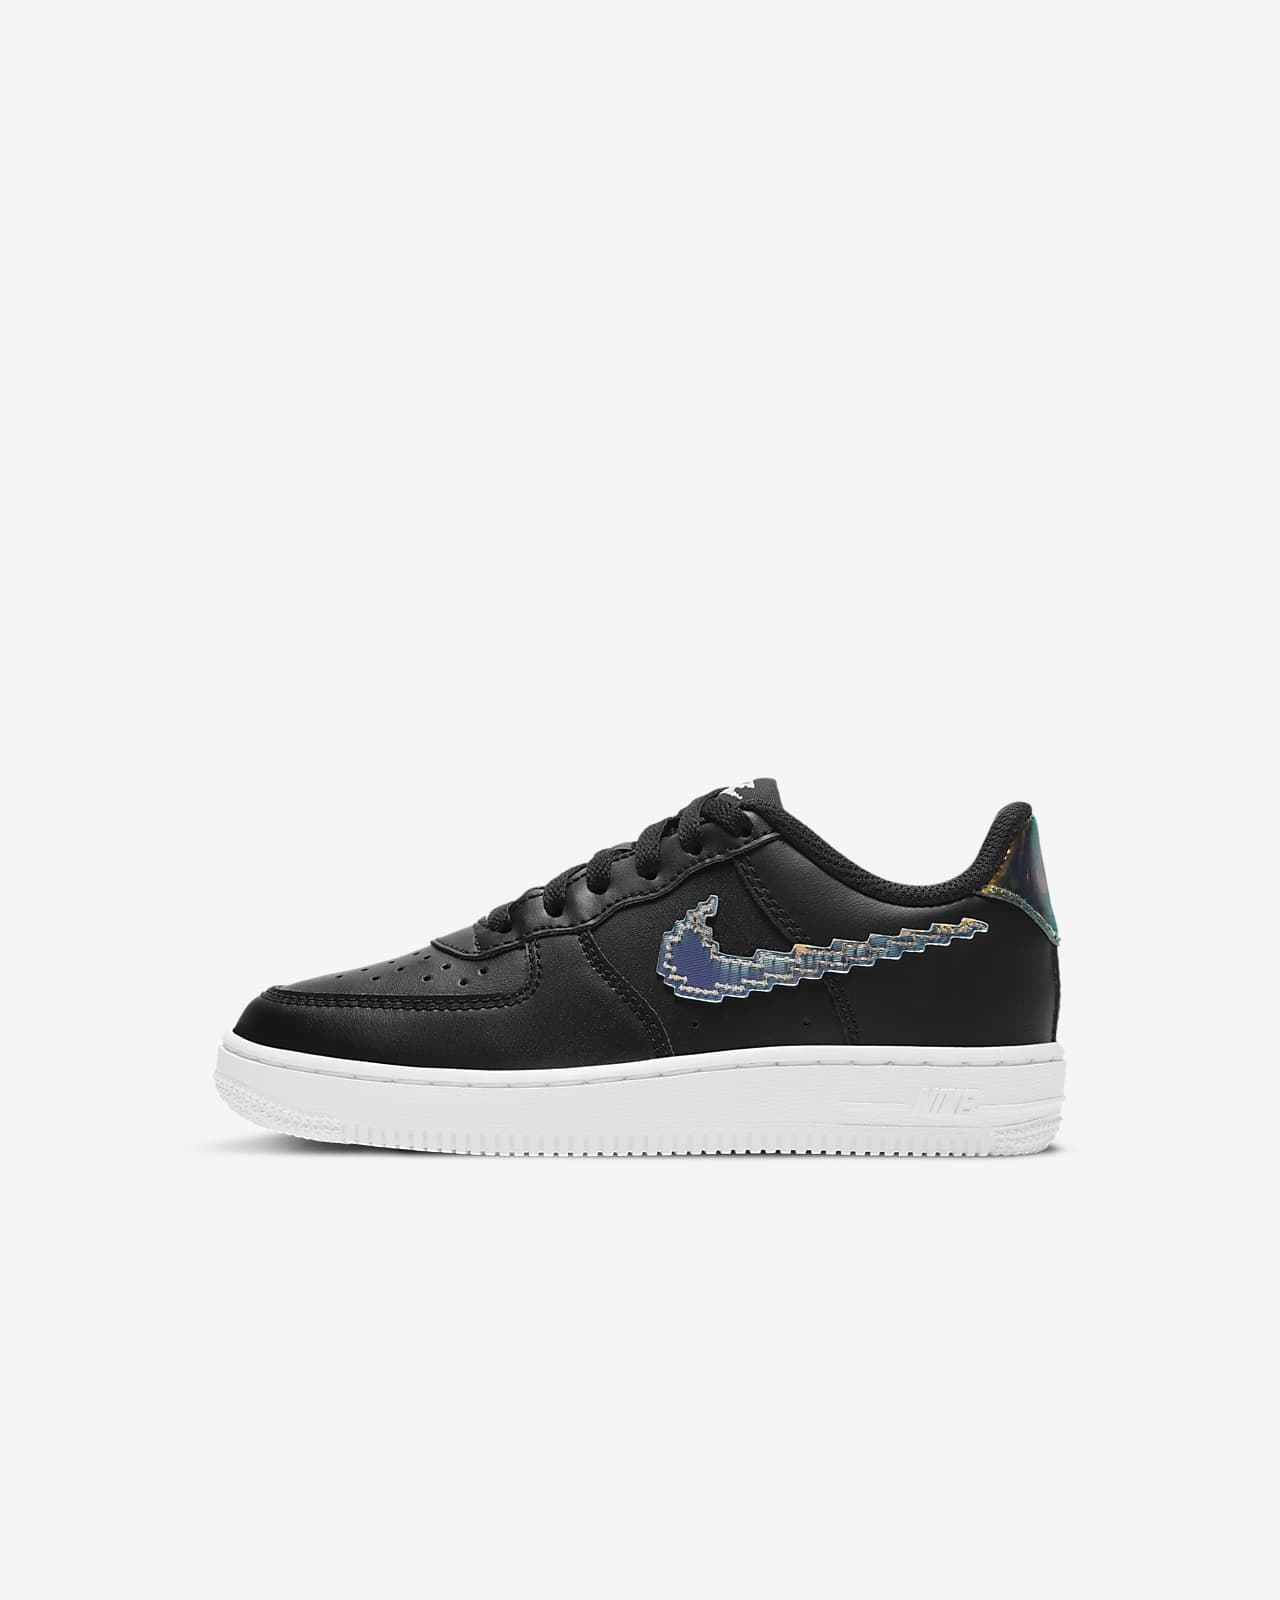 Nike Force 1 LV8 1 小童鞋款